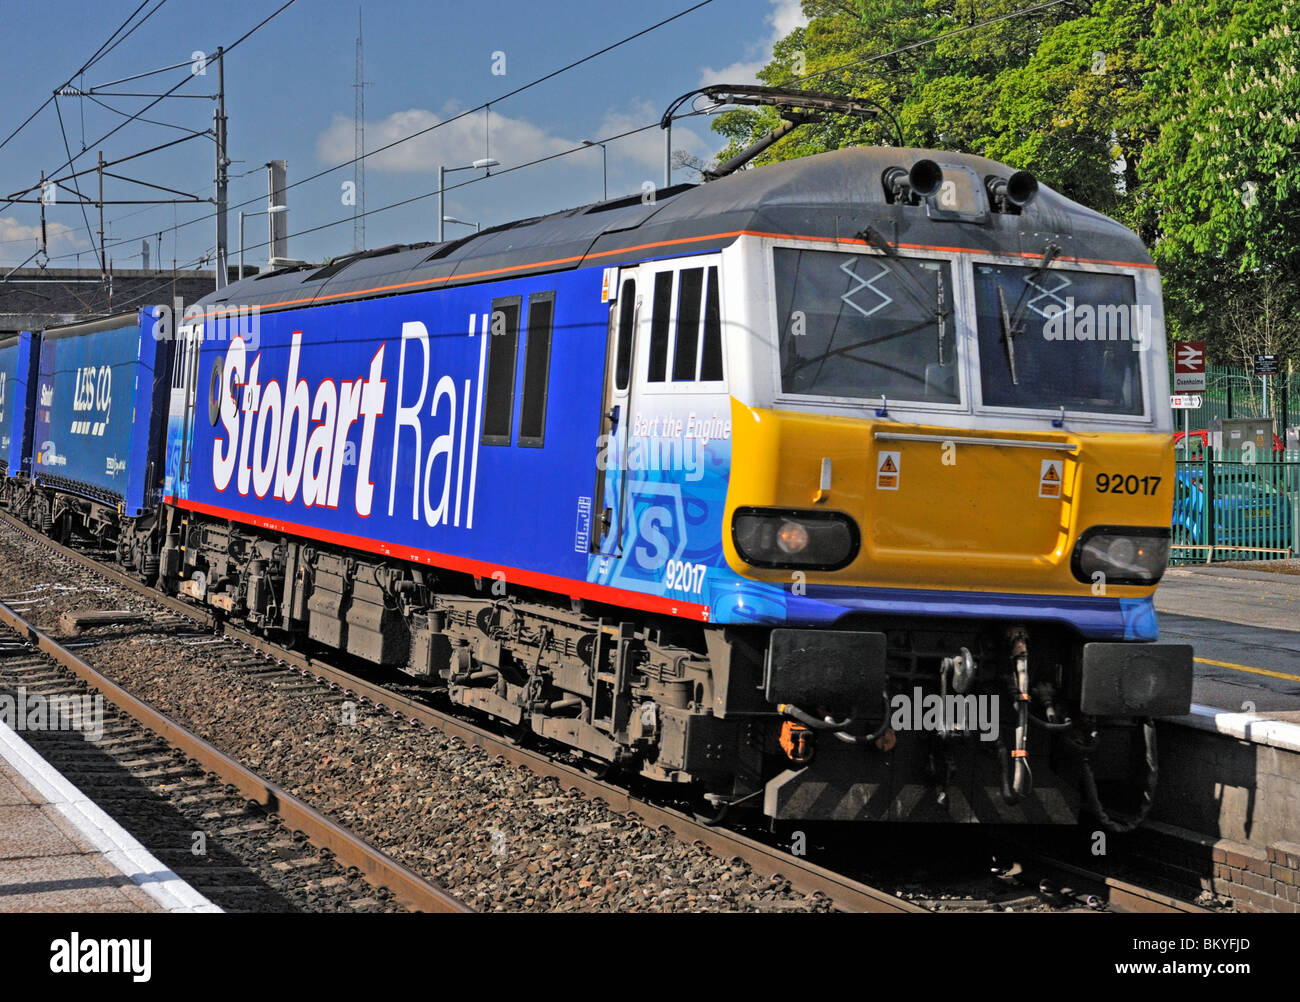 Stobart Rail locomotive No. 92017 'Bart the Engine' hauling Tesco Less CO2 freight. West Coast Main Line. - Stock Image